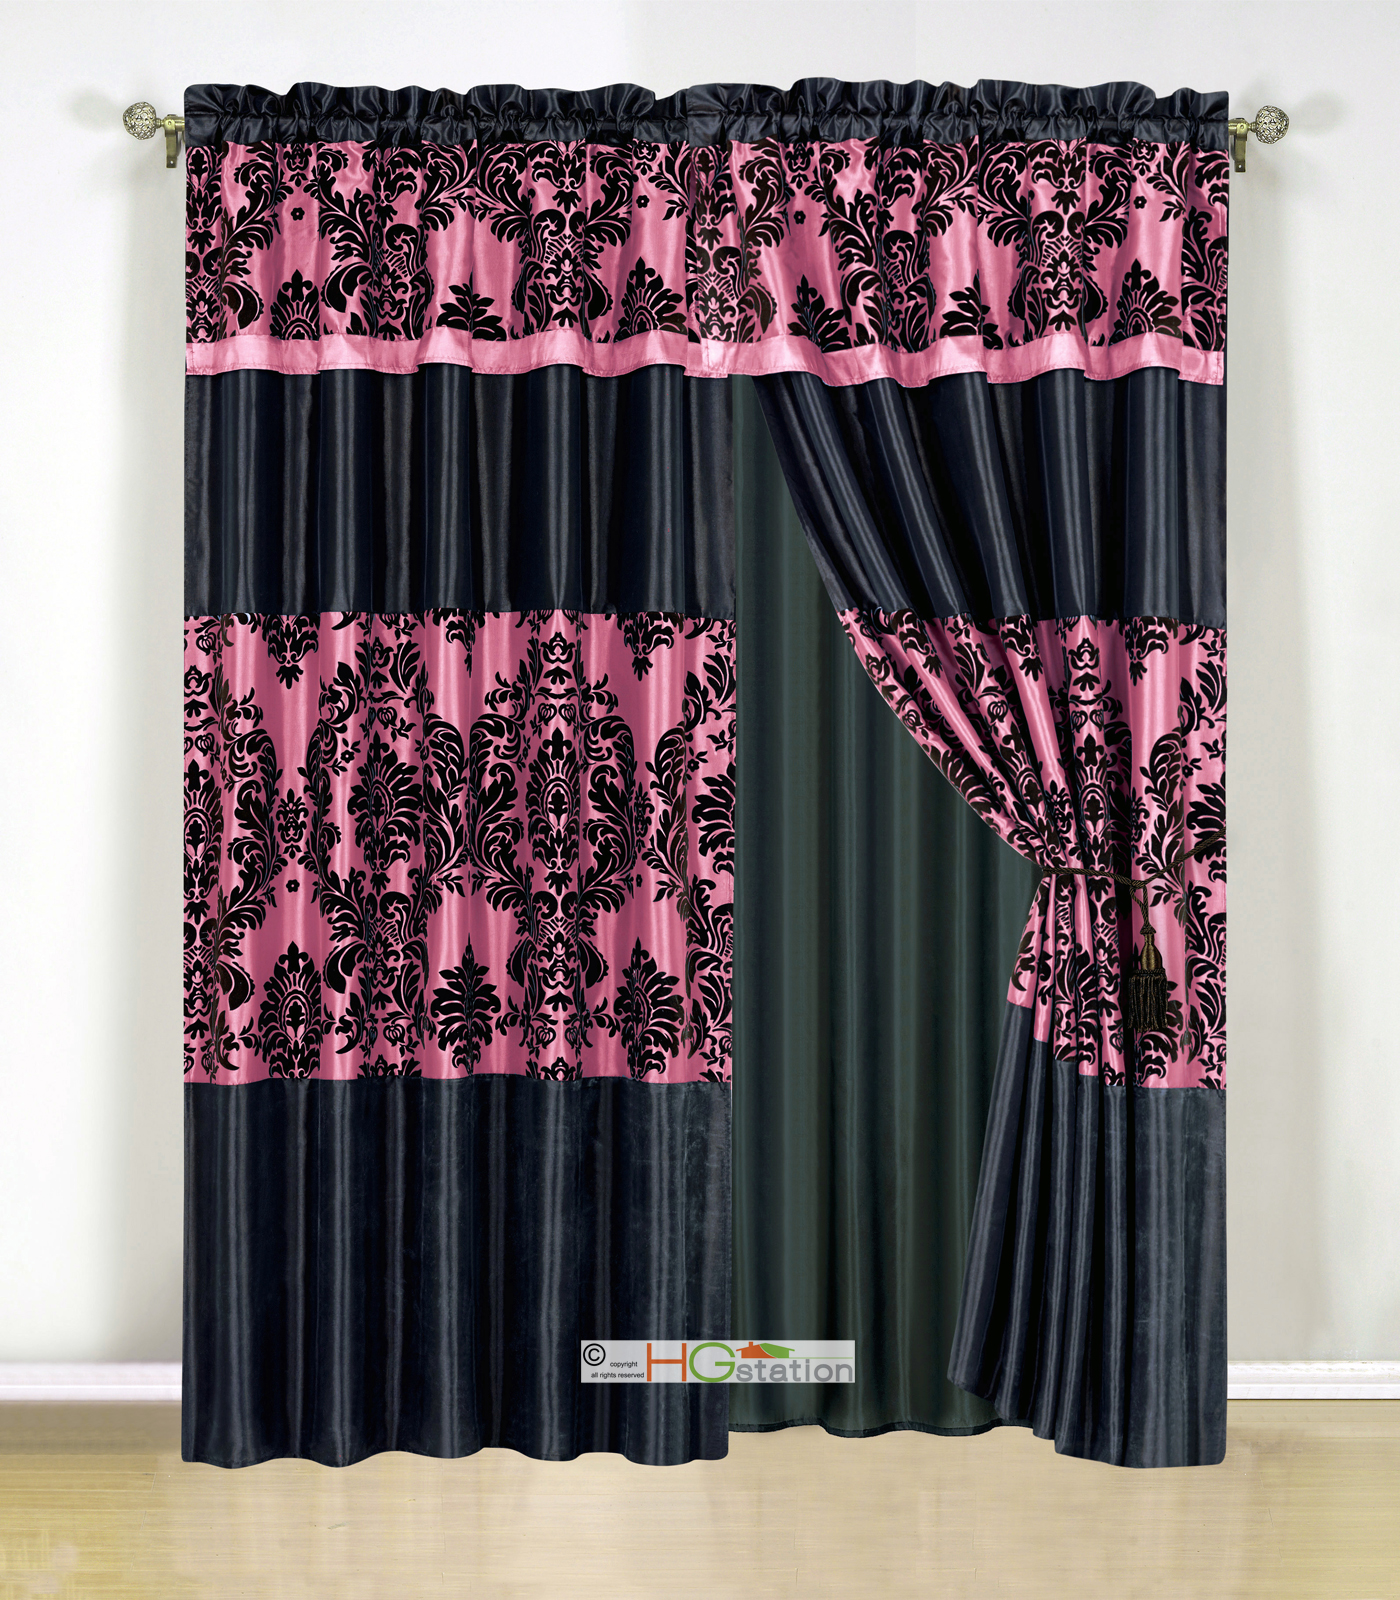 4pc Silky Satin Flocking Damask Striped Curtain Set Hot